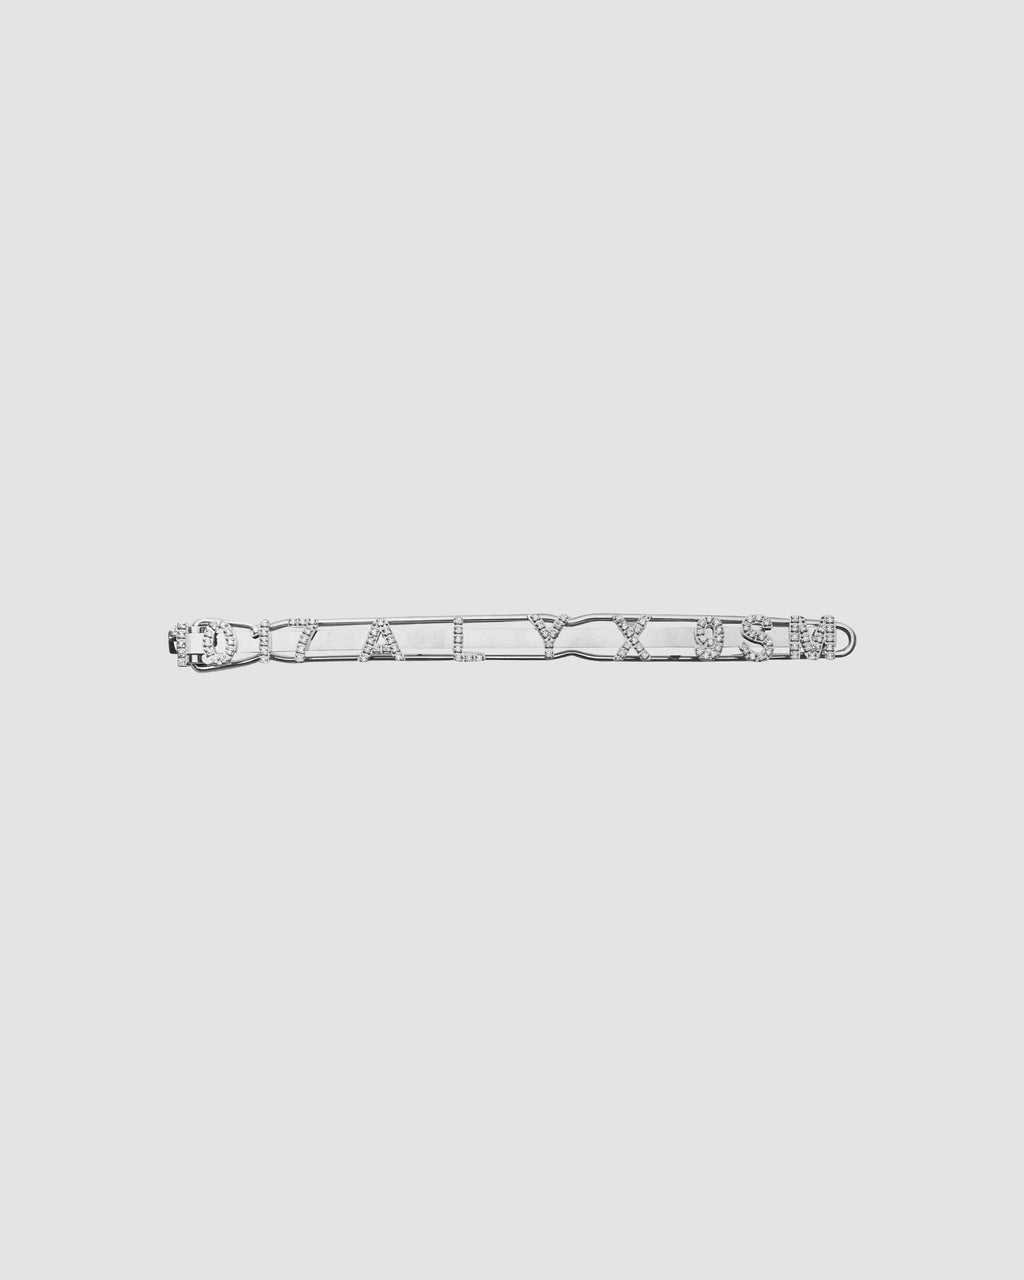 1017 ALYX 9SM | 1017 ALYX 9SM BARRETTE | Jewellery | Accessories, Google Shopping, Jewellery, jewelry, S20, S20 Drop II, SILVER, Woman, WOMEN